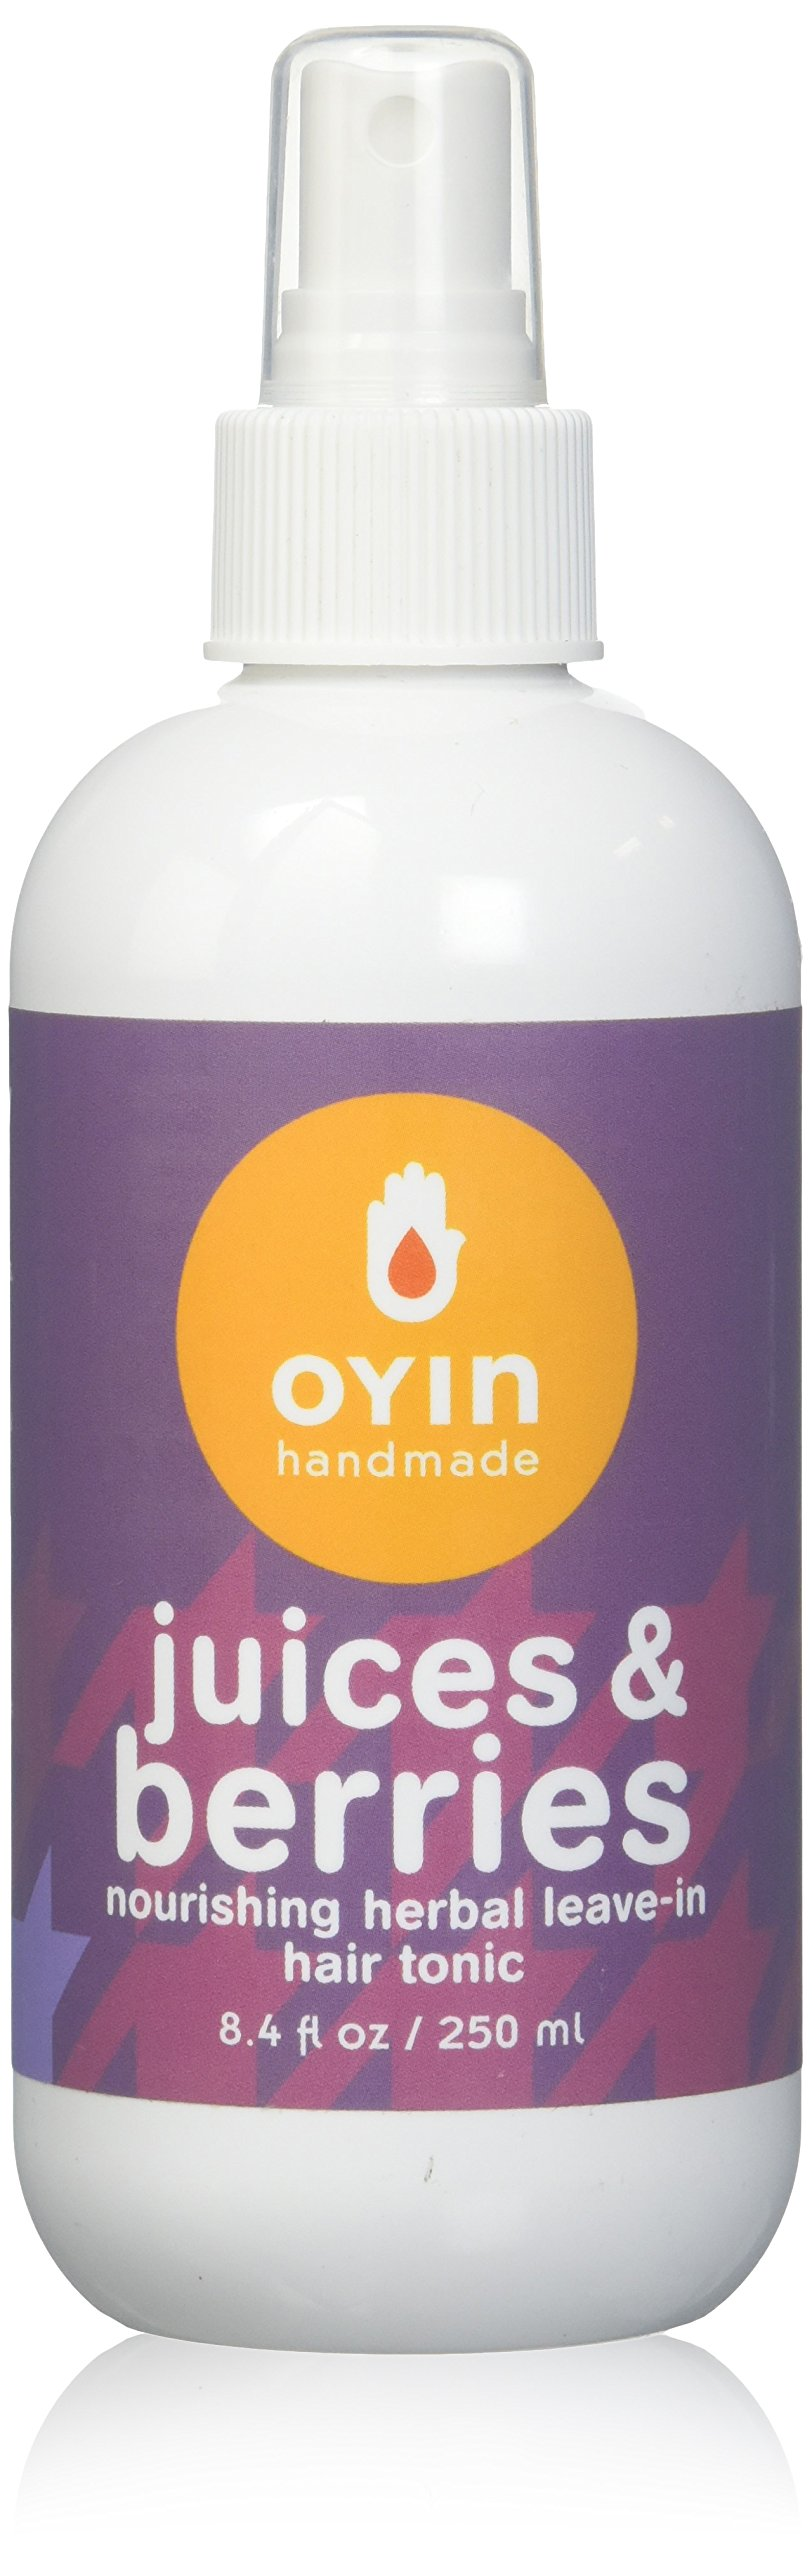 Oyin Handmade Juices and Berries Herbal Leave-In Hair Tonic, 8.4 Ounce